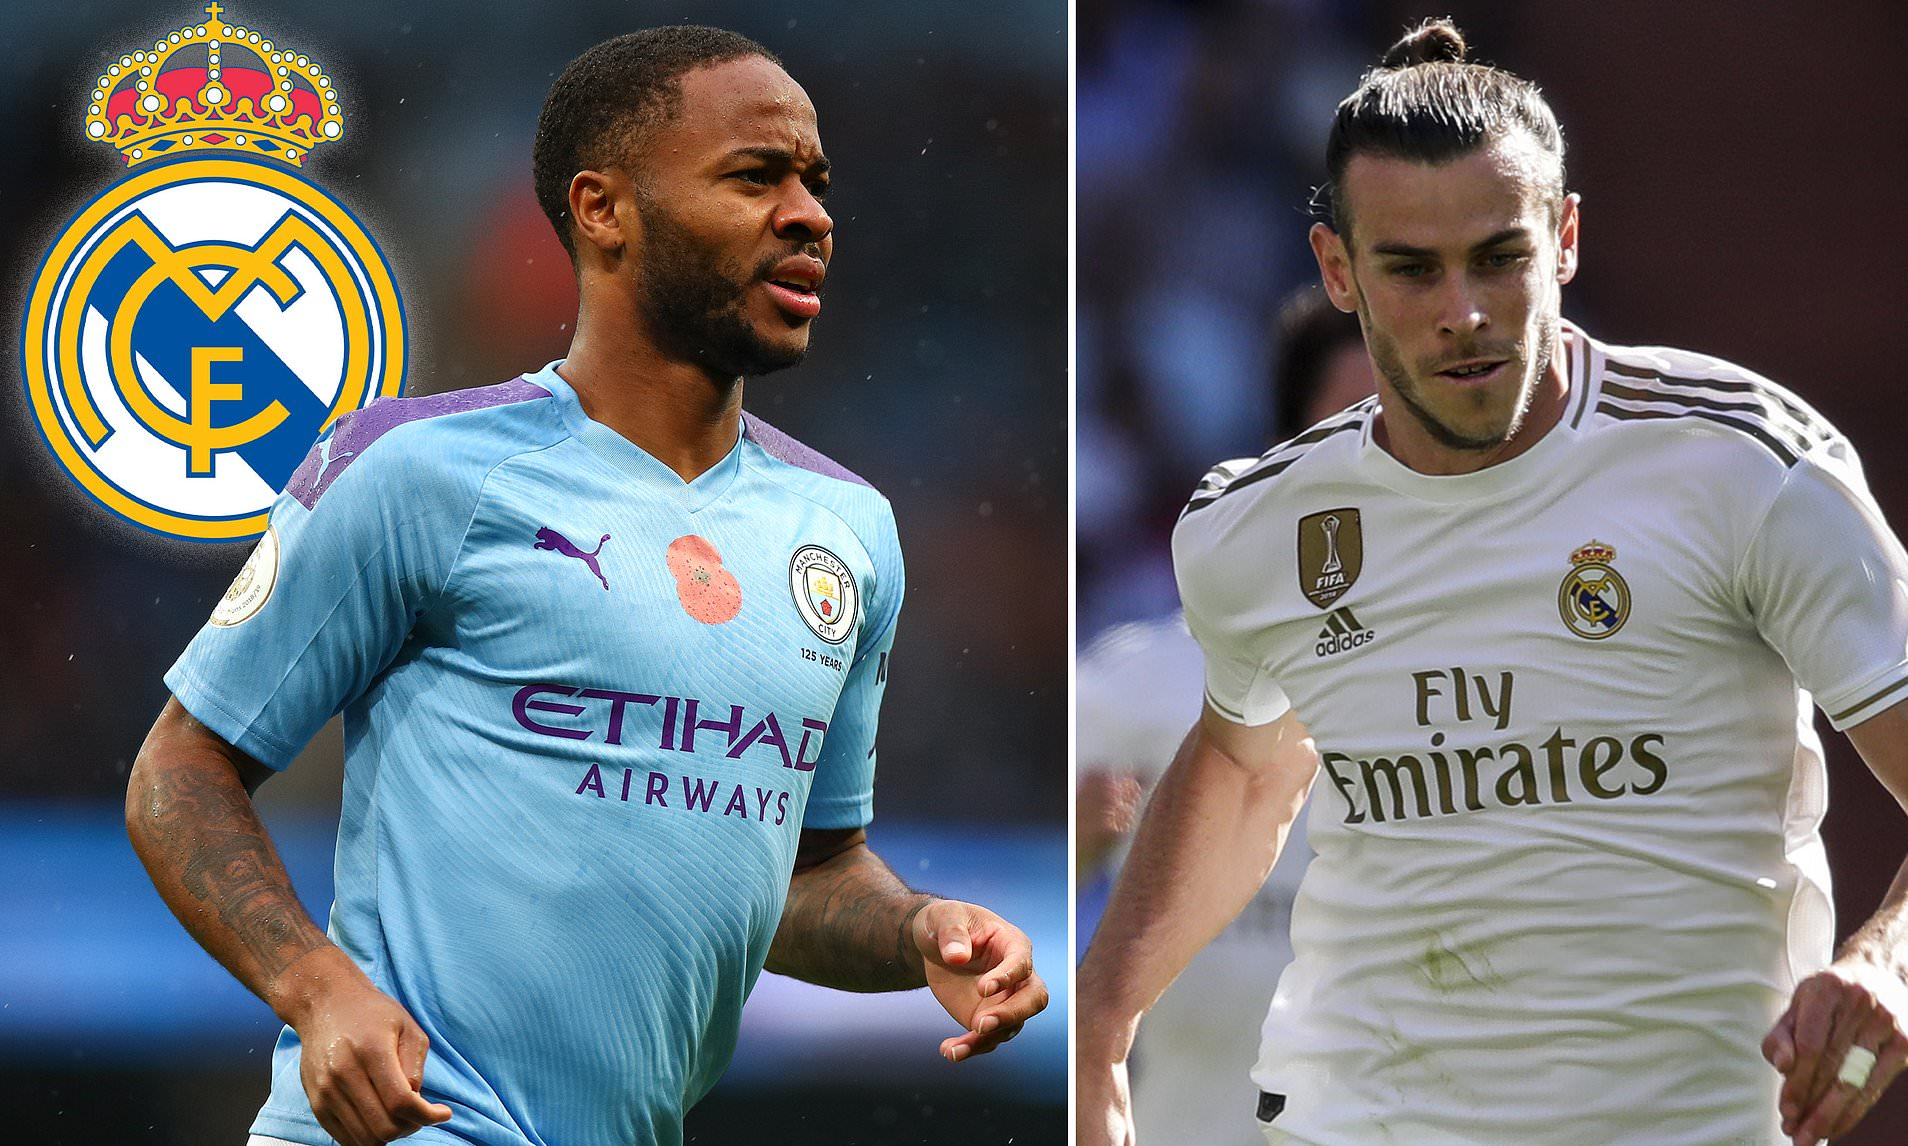 Real Madrid forward Gareth Bale has been left out of their 24-man Champions League squad for Friday's last-16 tie at Manchester City, casting doubts on his future at the club. Bale, 31, last played for Real in June when they beat Mallorca 2-0 and did not feature in their final seven league matches, as they […]